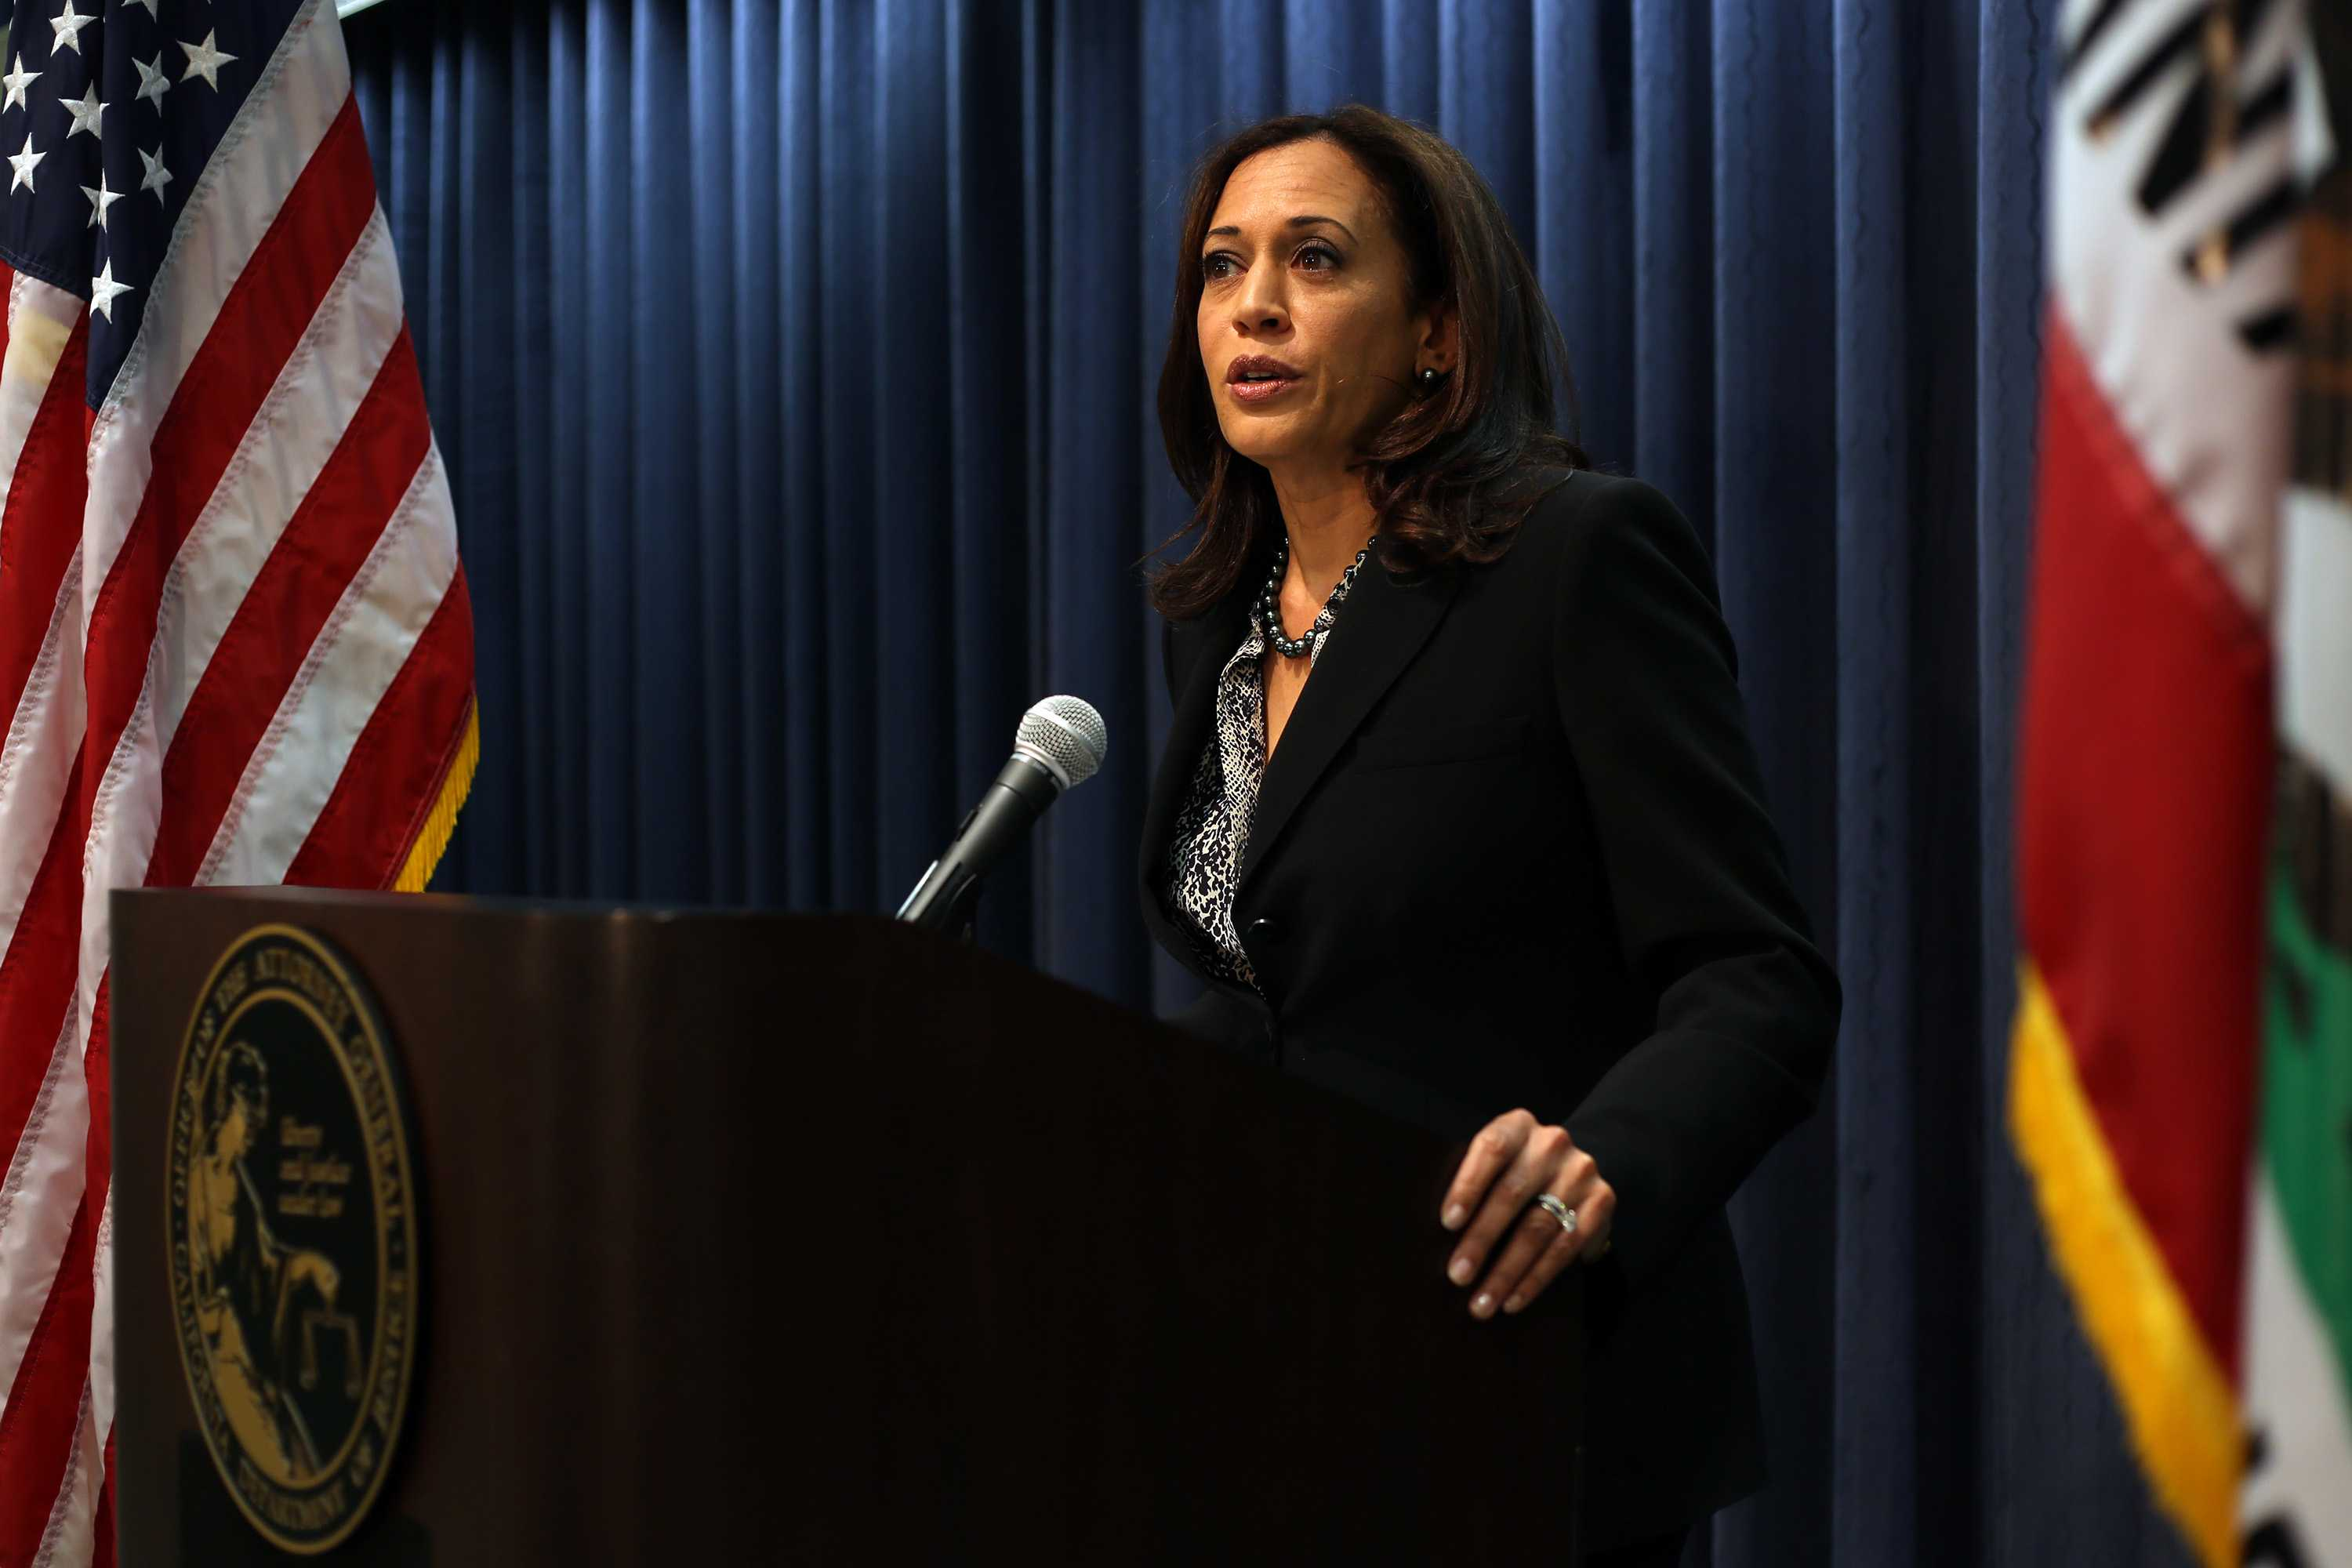 Attorney+General+Kamala+D.+Harris+addresses+a+news+conference+on+Tuesday%2C+Feb.+3%2C+2015%2C+on+the+verdict+in+the+cyber+exploitation+%22revenge+porn%22+trial+in+Los+Angeles.+where+Kevin+Bollaert+was+found+guilty+of+six+counts+of+extortion+and+21+counts+of+identity+theft.+%28Irfan+Khan%2FLos+Angeles+Times%2FTNS%29